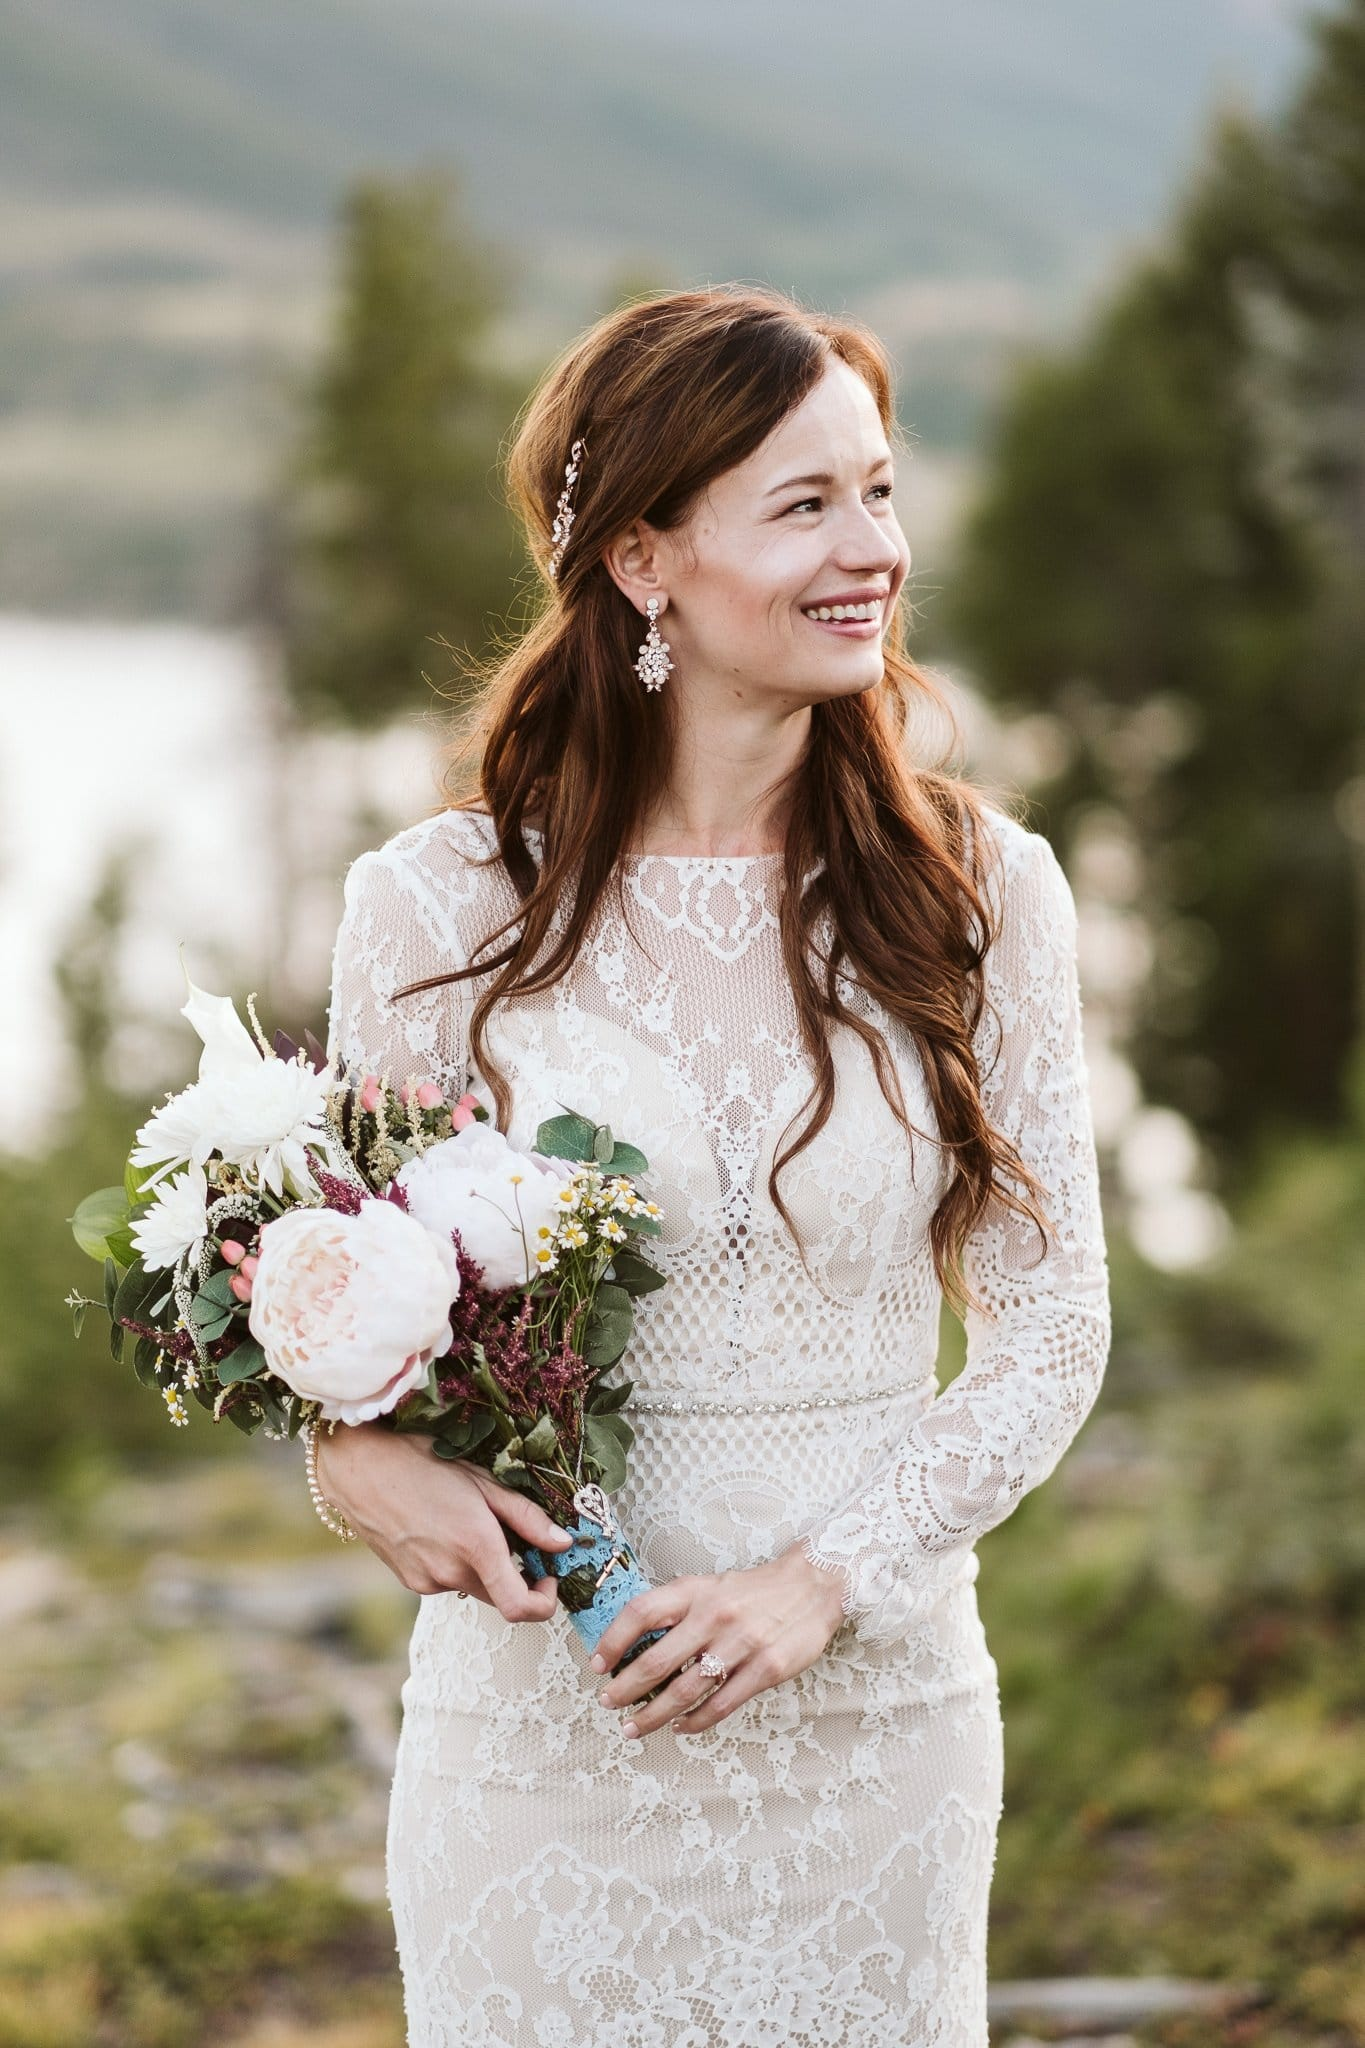 Bridal portraits in the woods, bride wearing Ortiva wedding dress from White One by Pronovias, long sleeve elegant wedding dress